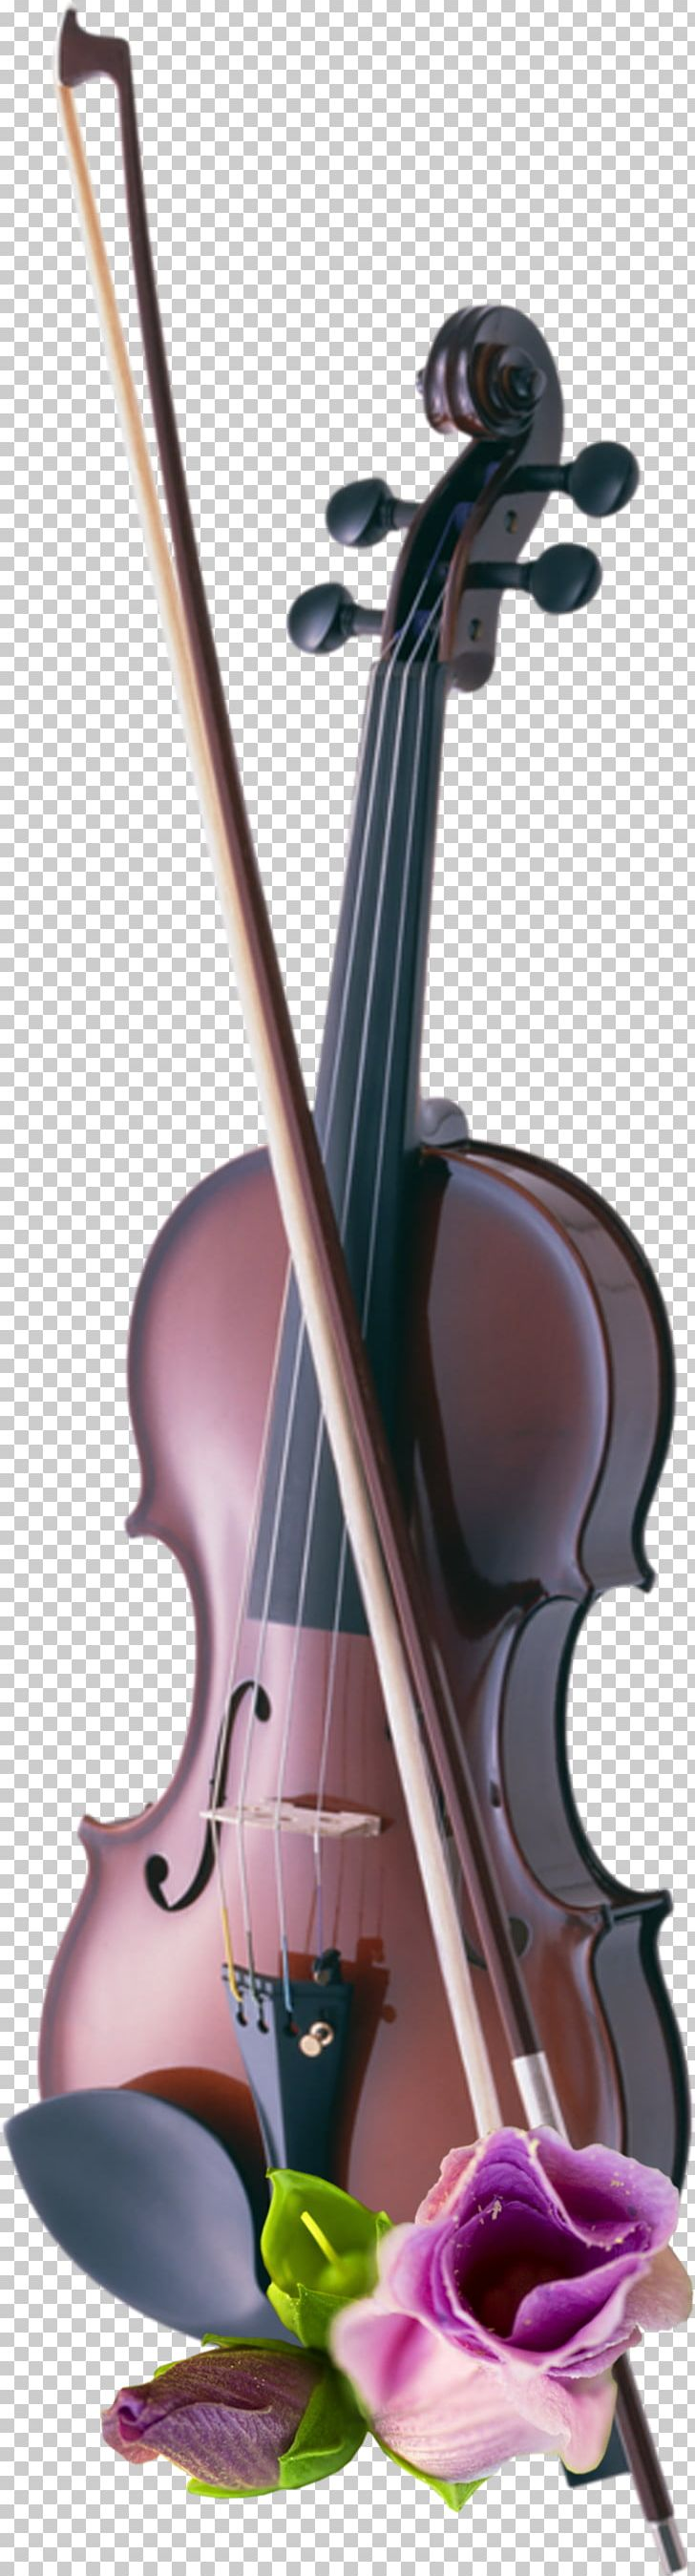 Cello Violin Musical Instruments String Instruments PNG, Clipart, Bowed String Instrument, Cello, Digital Image, Floral Design, Music Free PNG Download